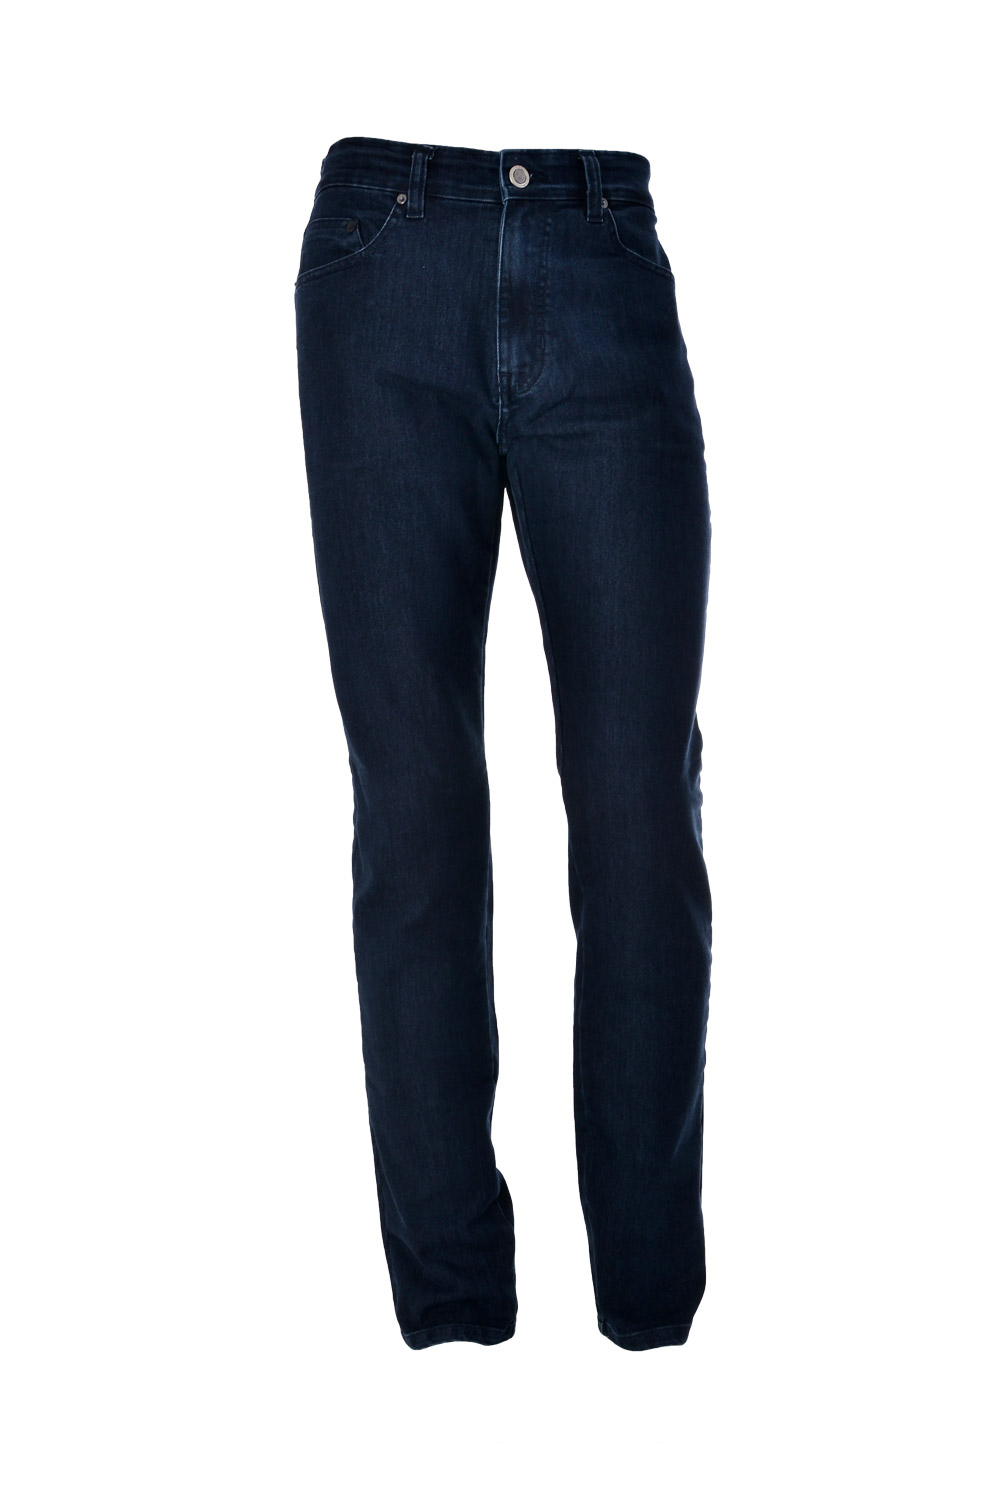 CALÇA JEANS BLUES POLIALGODAO & ELASTANO 5 POCKETS STONED PIN